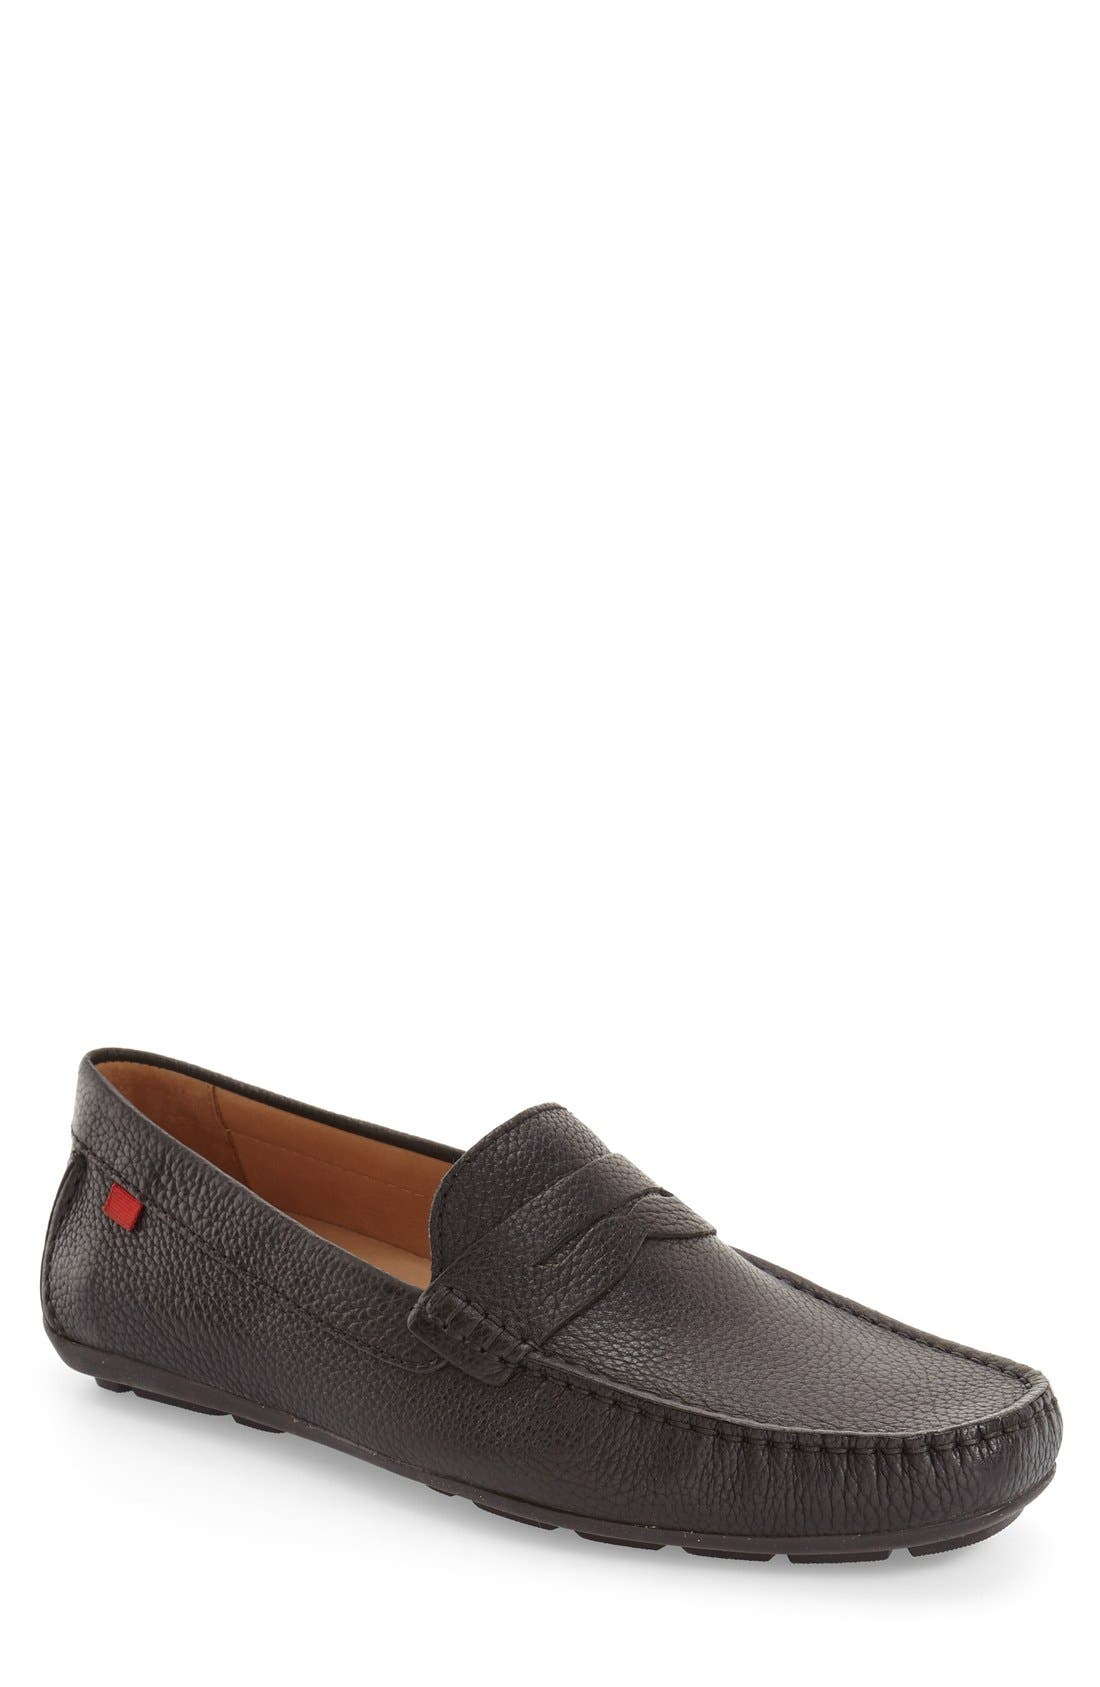 'Union Street' Penny Loafer,                             Main thumbnail 1, color,